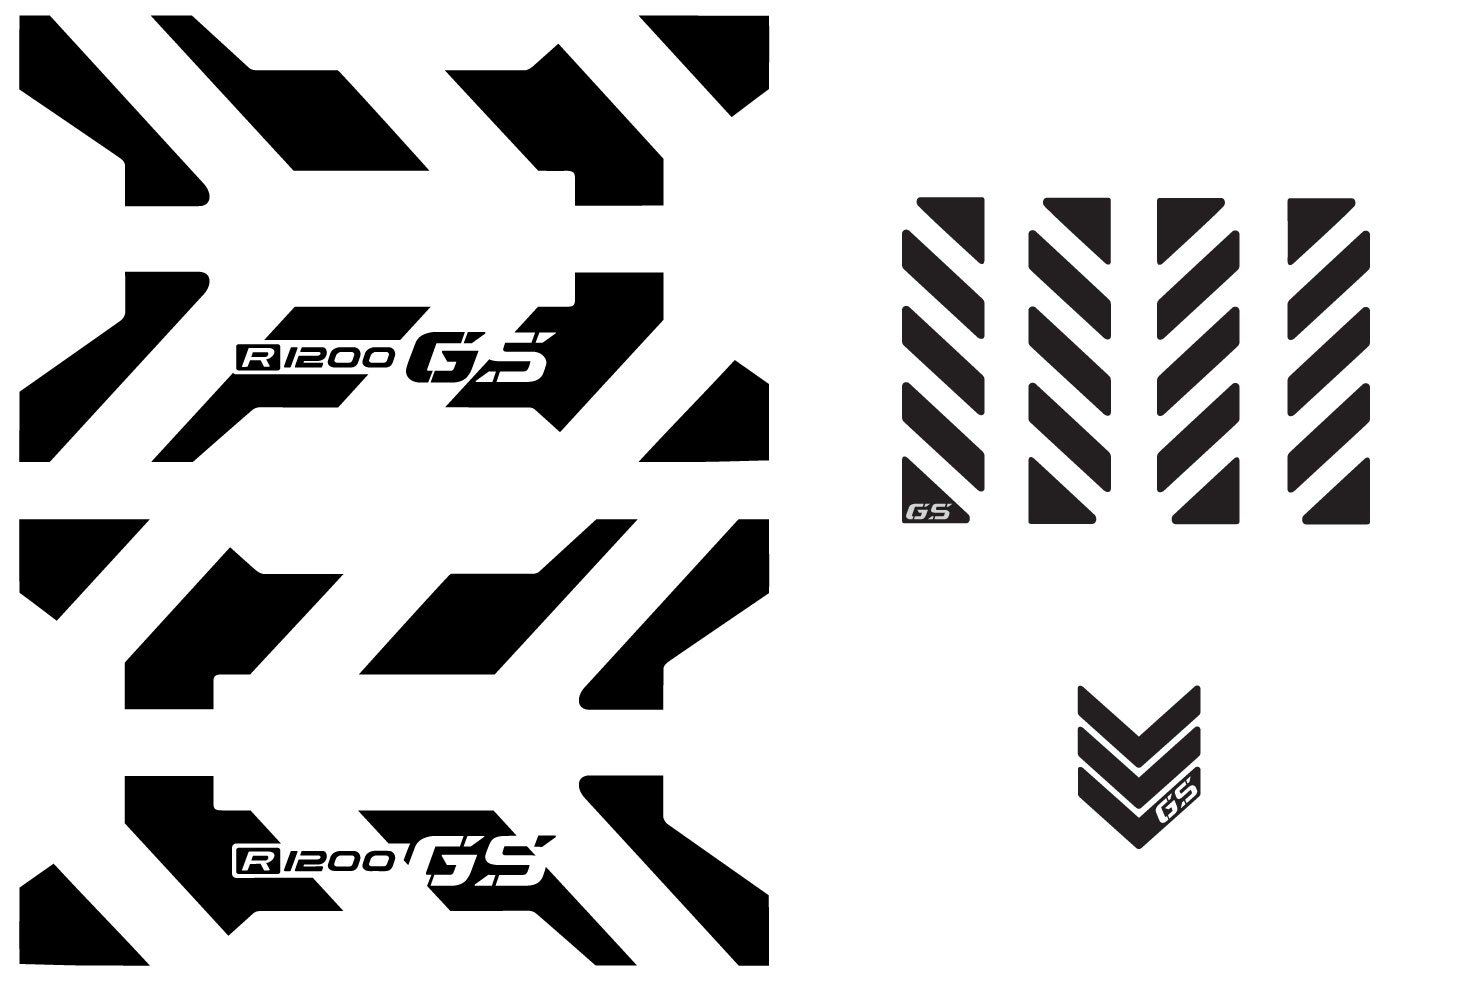 The Pixel Hut gs00017b BMW GS Motorcycle Reflective Decal Kit ''X Chevron'' for Variable Panniers - Black